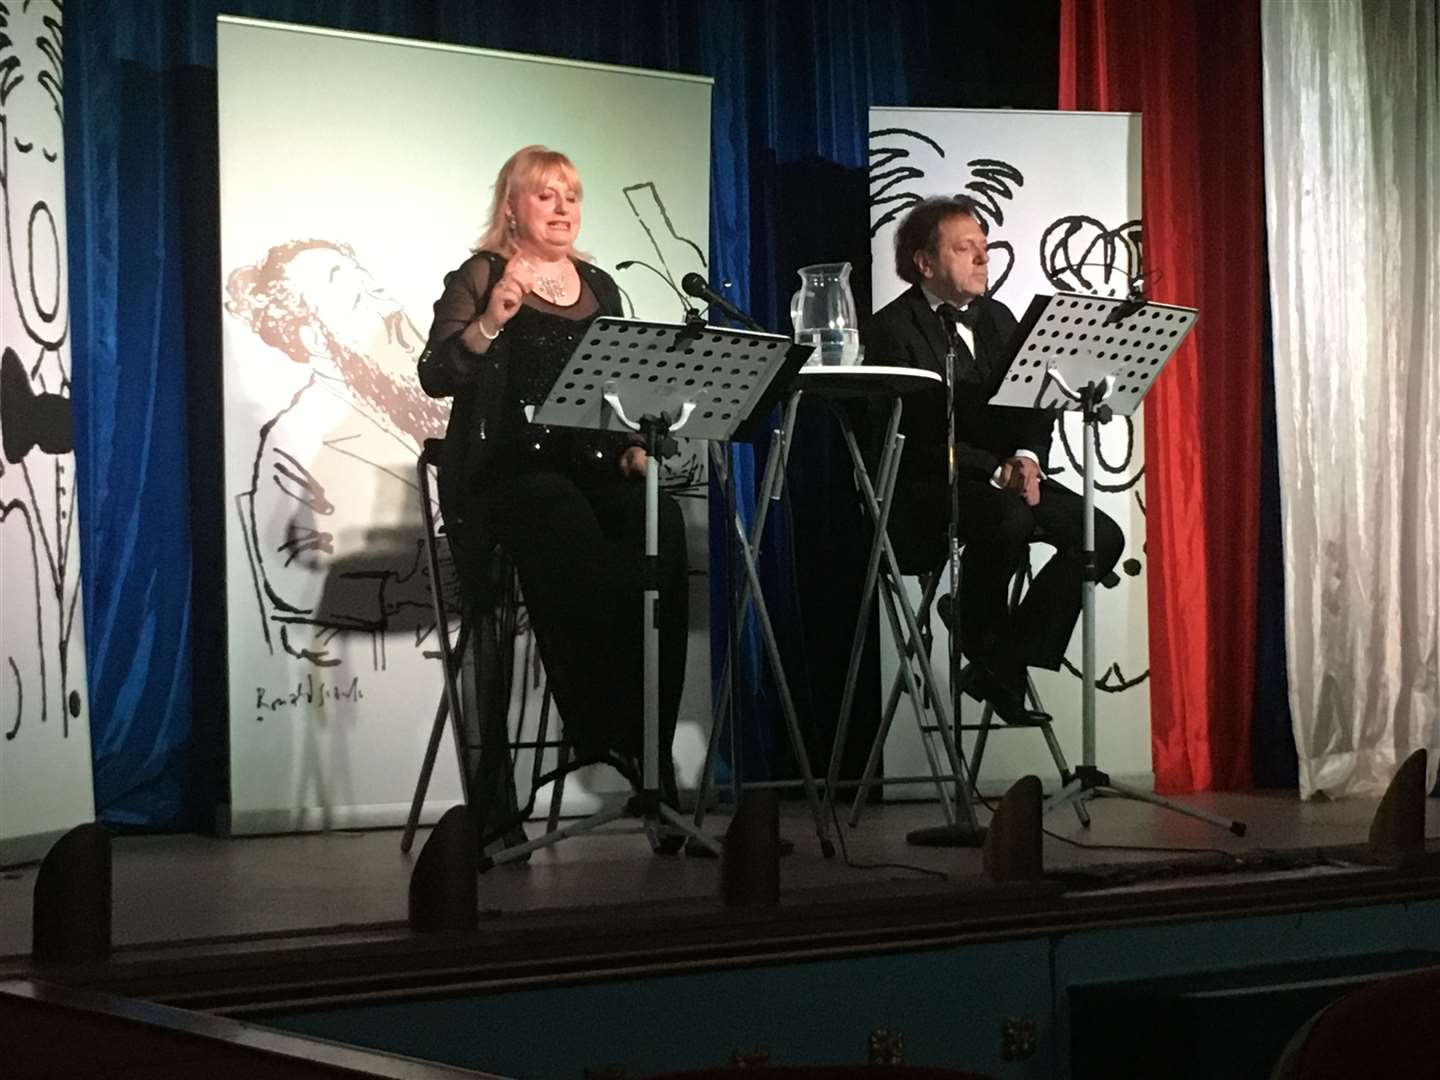 Sovra Newman and Leon Berger presenting a tribute to Flanders and Swan at the Criterion Theatre, Blue Town, Sheppey